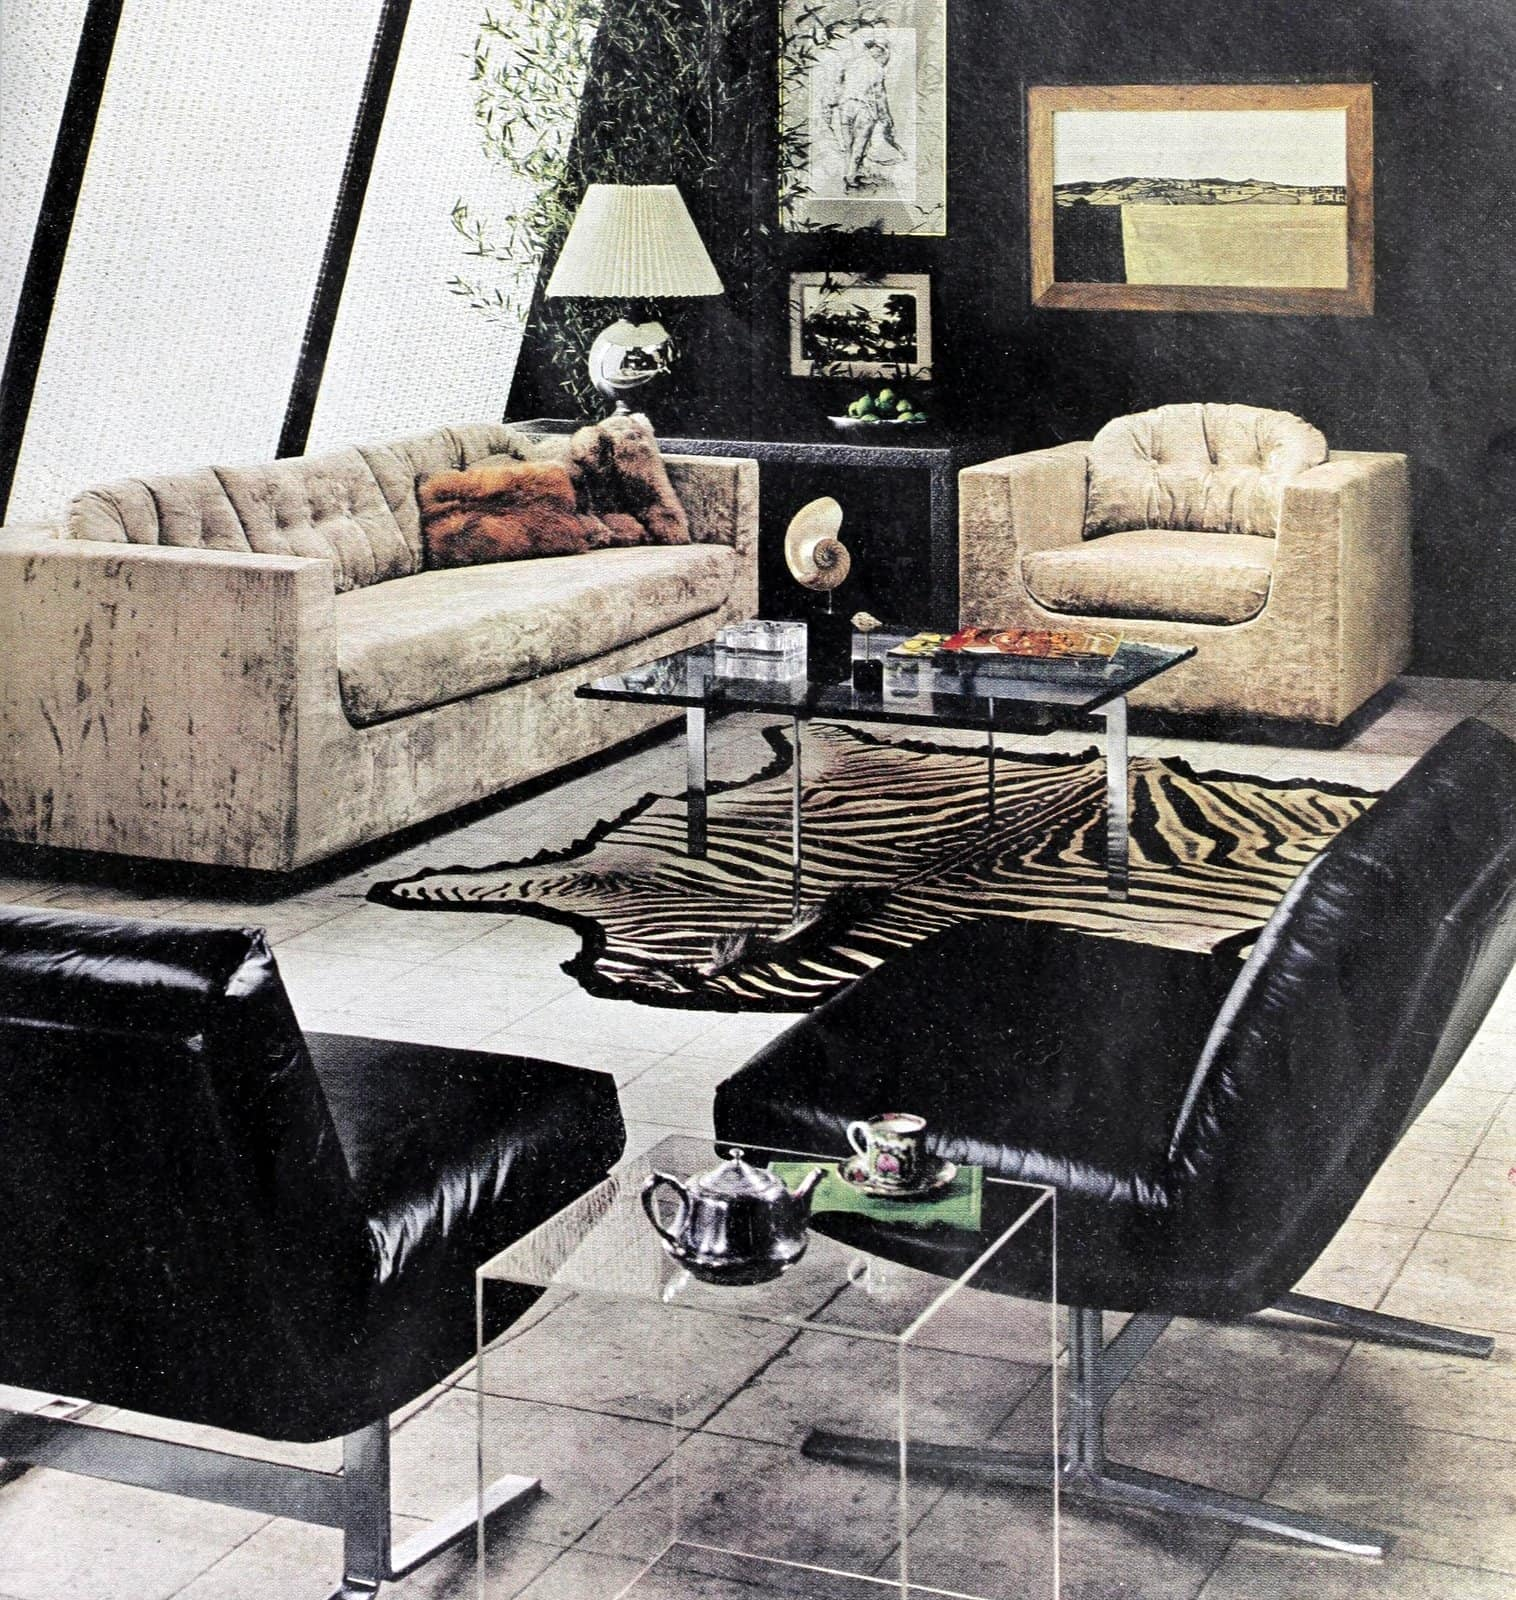 Mod-style furnishings in a retro sixties living room (1969)